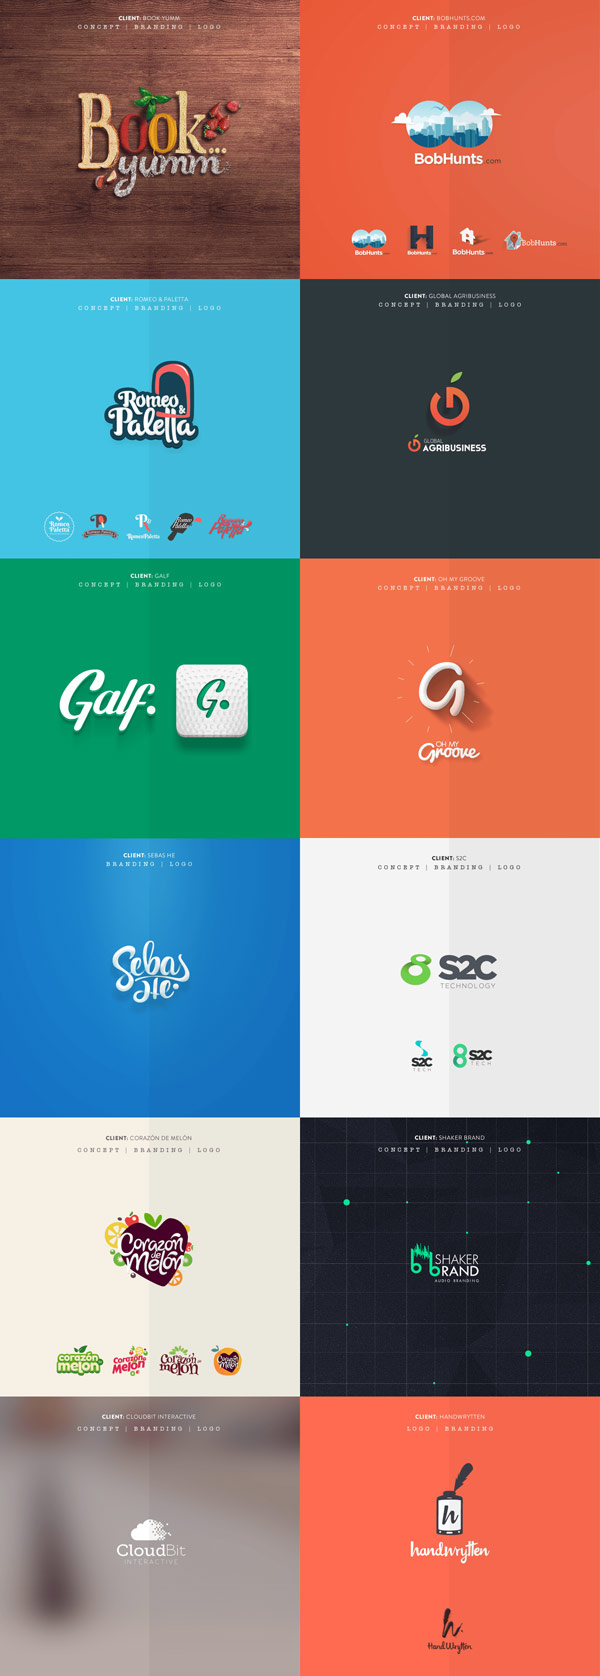 Logos and Graphics by Fixed Agency